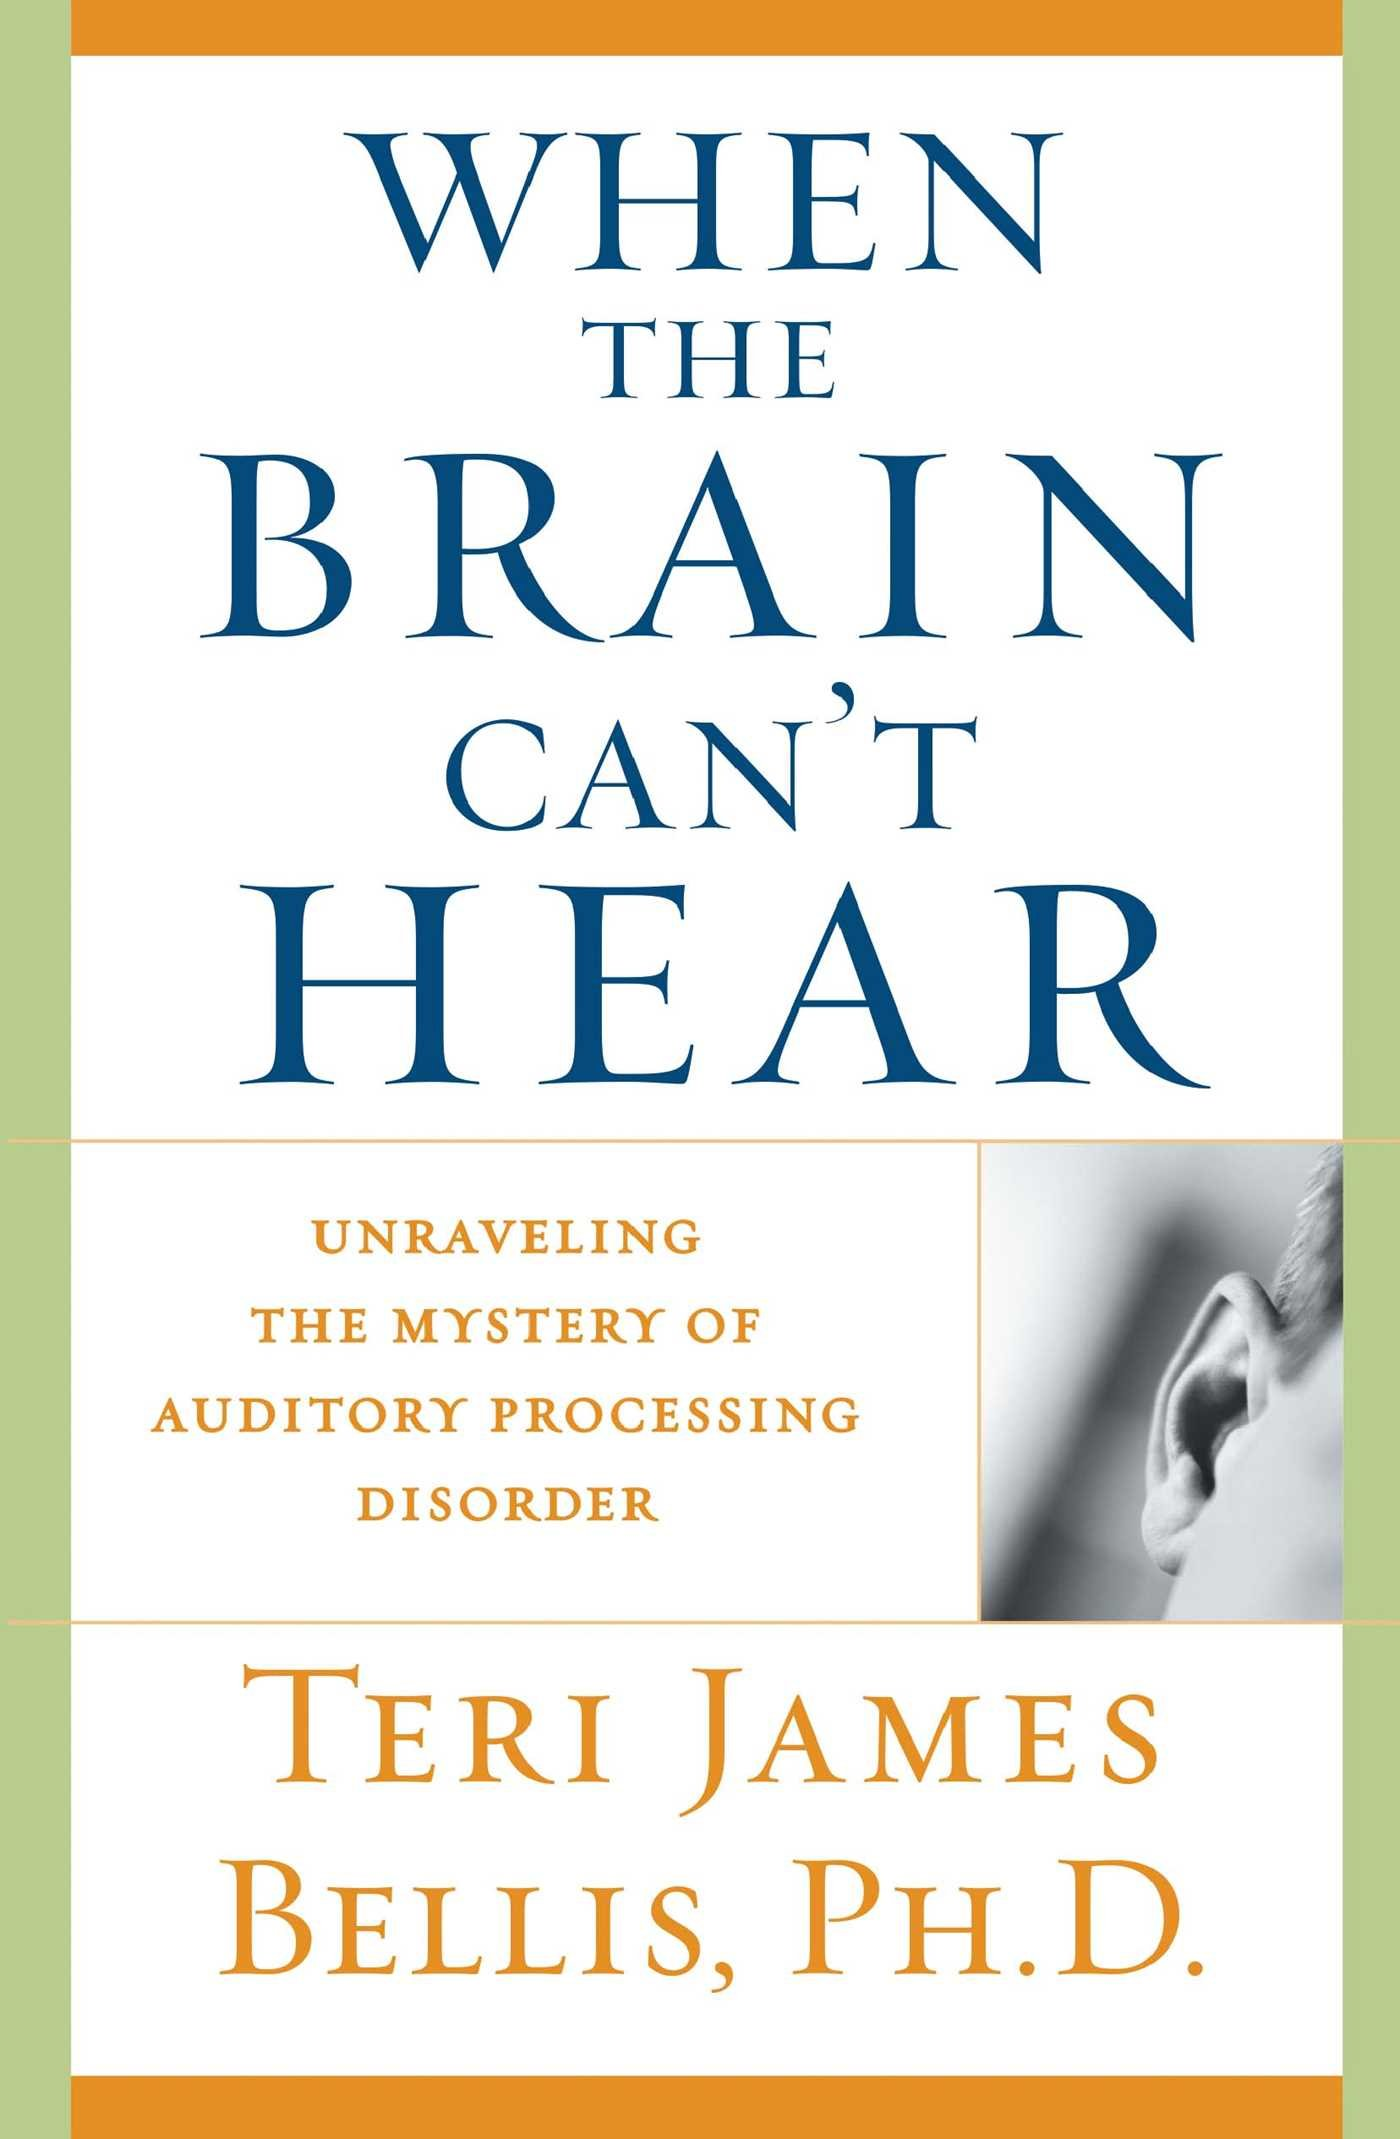 When the Brain Can't Hear: Unraveling the Mystery of Auditory Processing  Disorder: Ph.d. Teri James Bellis: 9780743428644: Amazon.com: Books